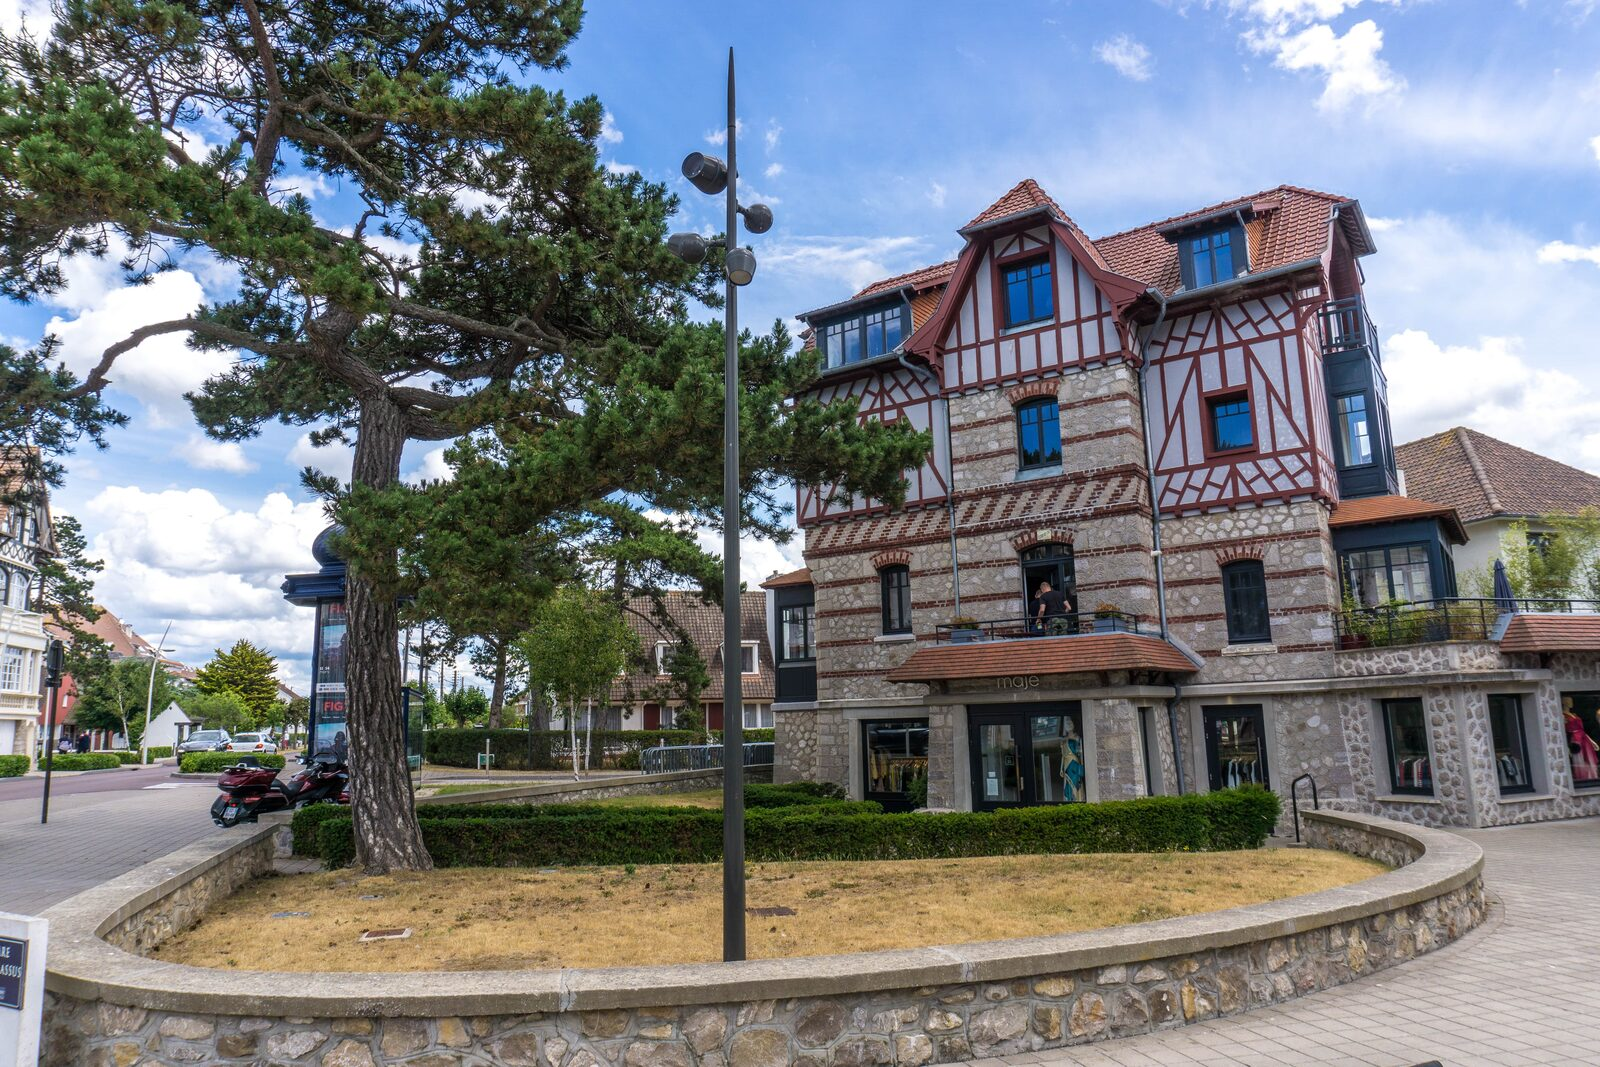 Architectural Anglo-Norman highlights in the town of Le Touquet Paris Plage